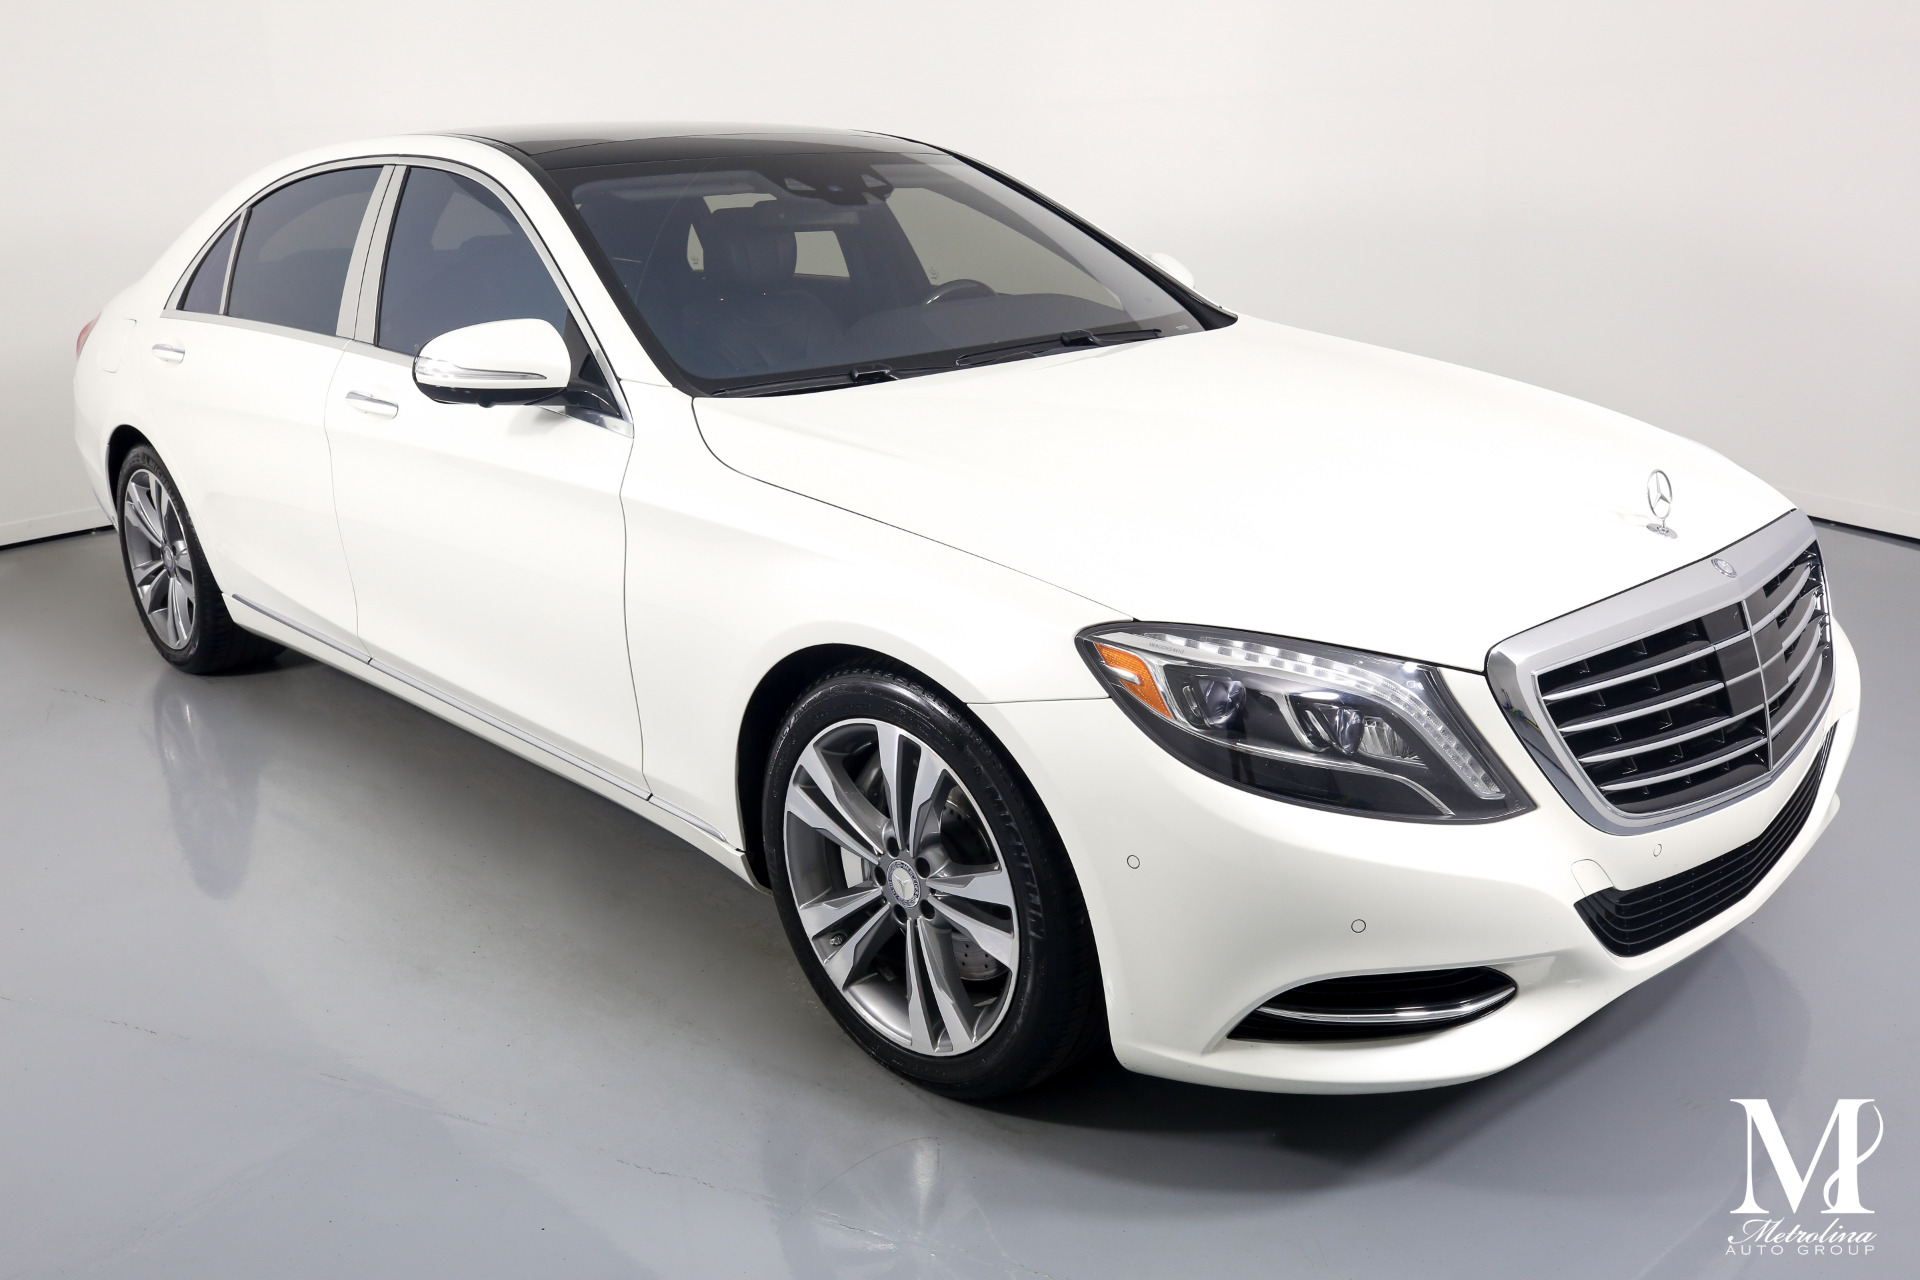 Used 2015 Mercedes-Benz S-Class S 550 4MATIC for sale $49,996 at Metrolina Auto Group in Charlotte NC 28217 - 2